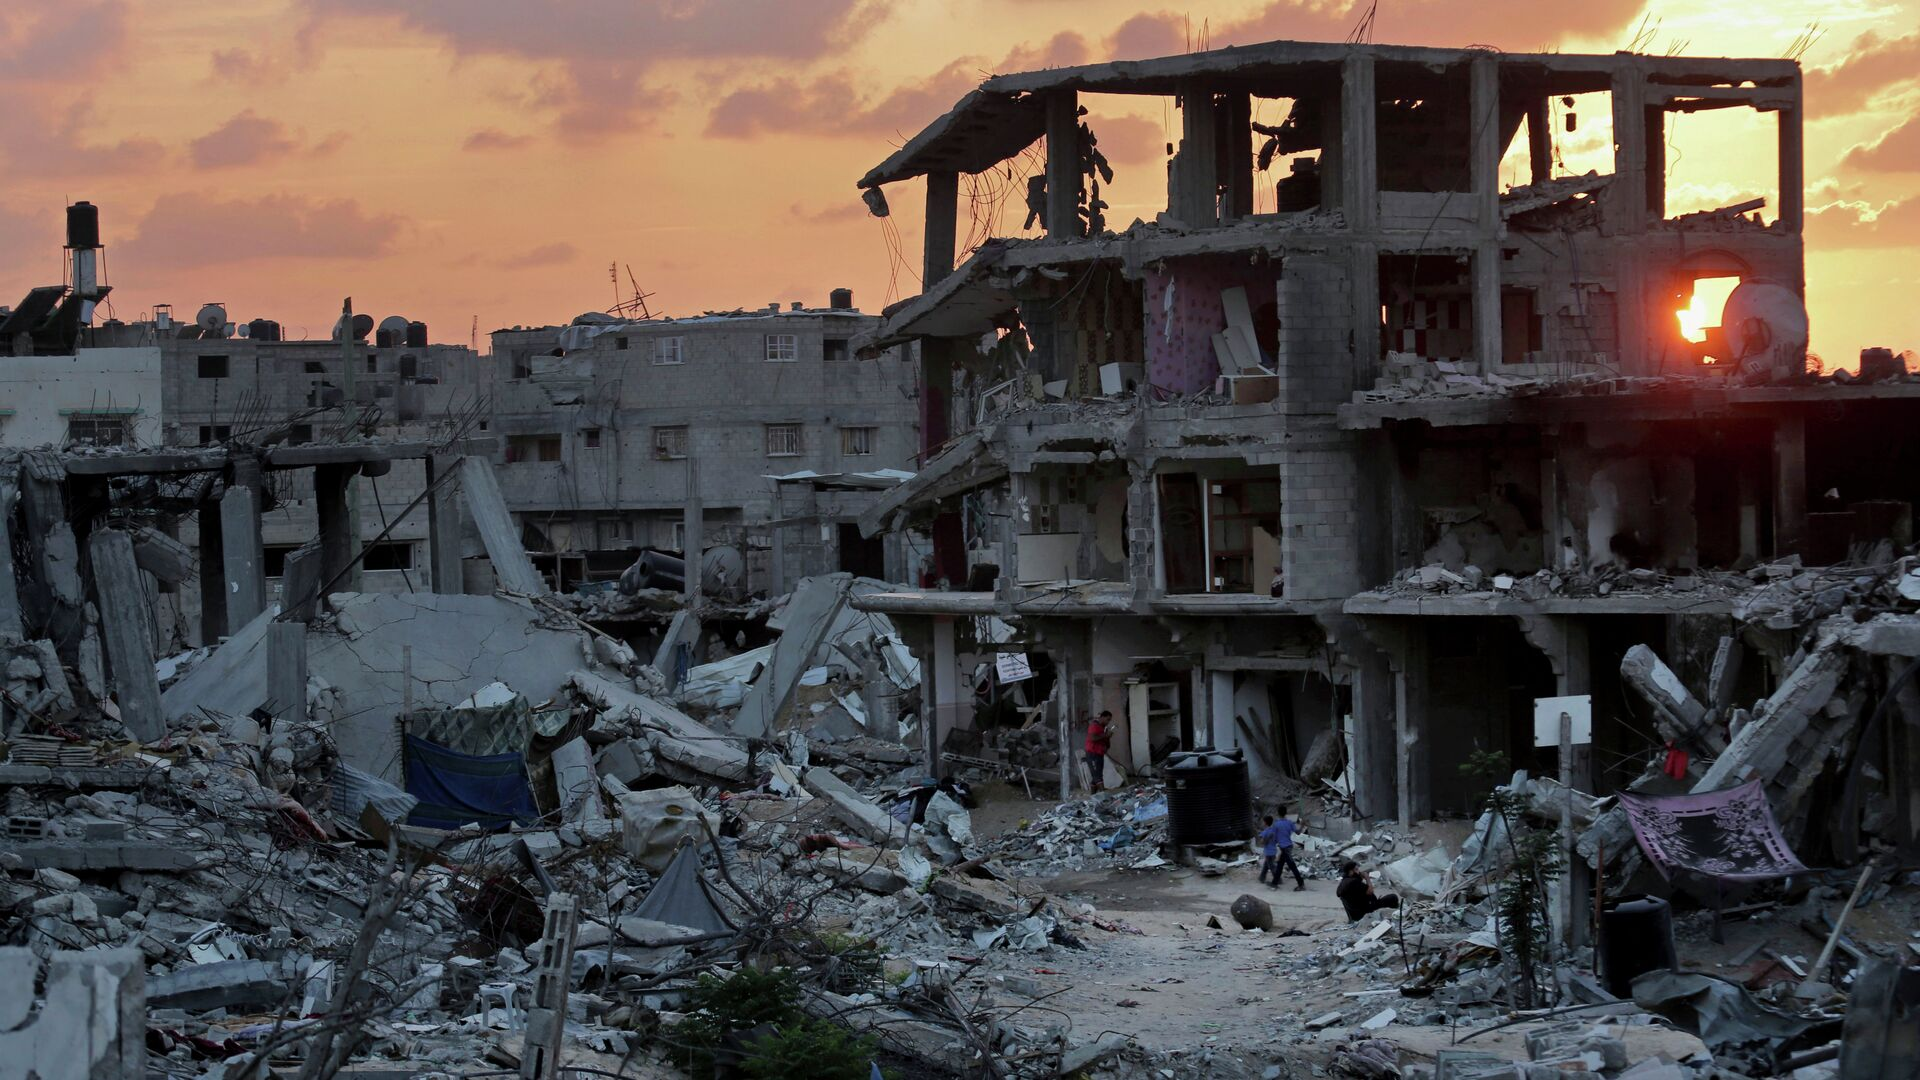 Palestinians walk during the sunset between the rubble of their destroyed building in Shijaiyah neighborhood of Gaza City in the northern Gaza Strip, Sunday, Oct. 12, 2014 - Sputnik Mundo, 1920, 25.07.2021